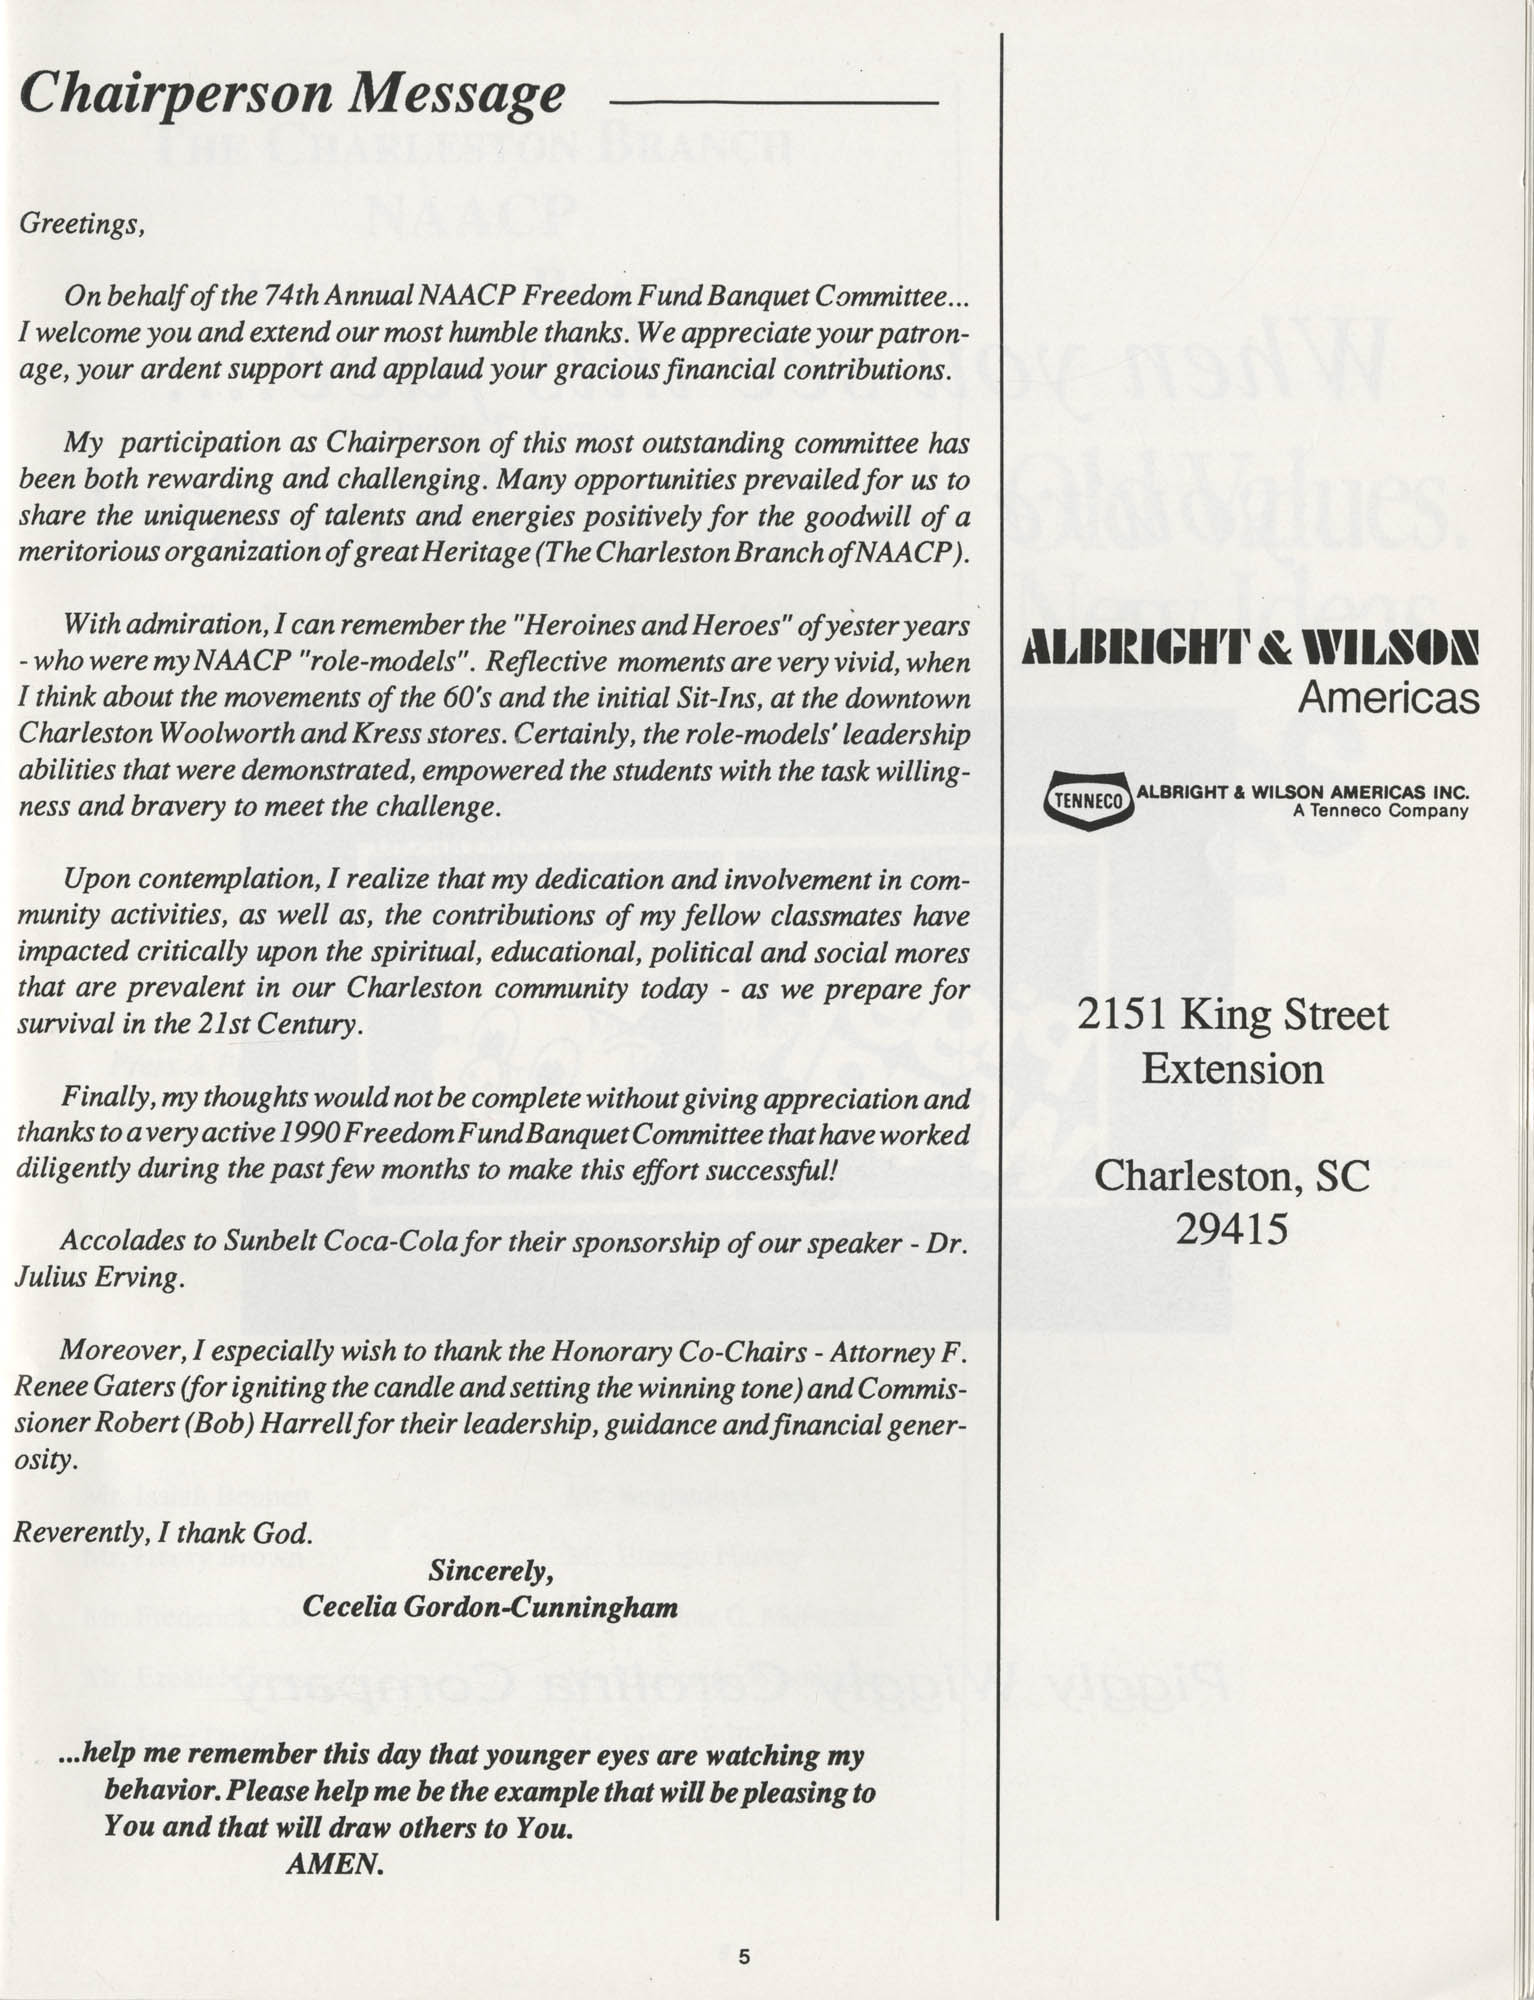 1990 NAACP Freedom Fund Magazine, Charleston Branch of the NAACP, 74th Anniversary, Page 5